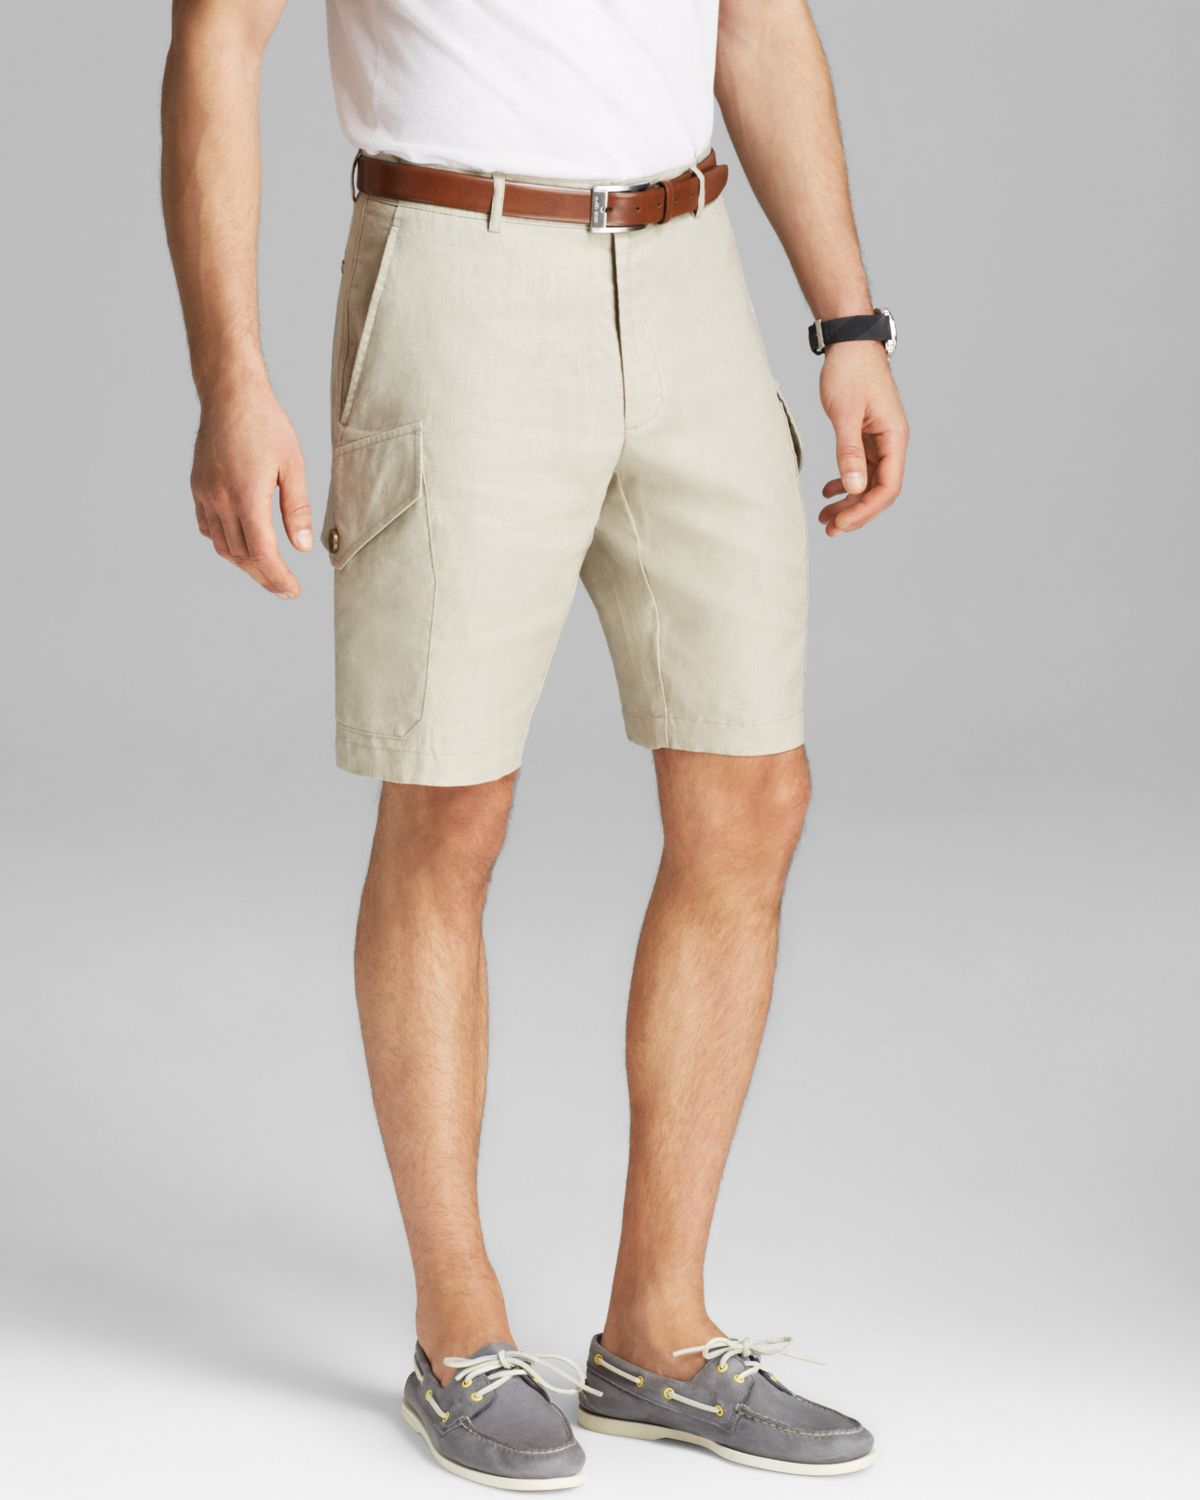 Michael kors Linen Cargo Shorts in White for Men | Lyst